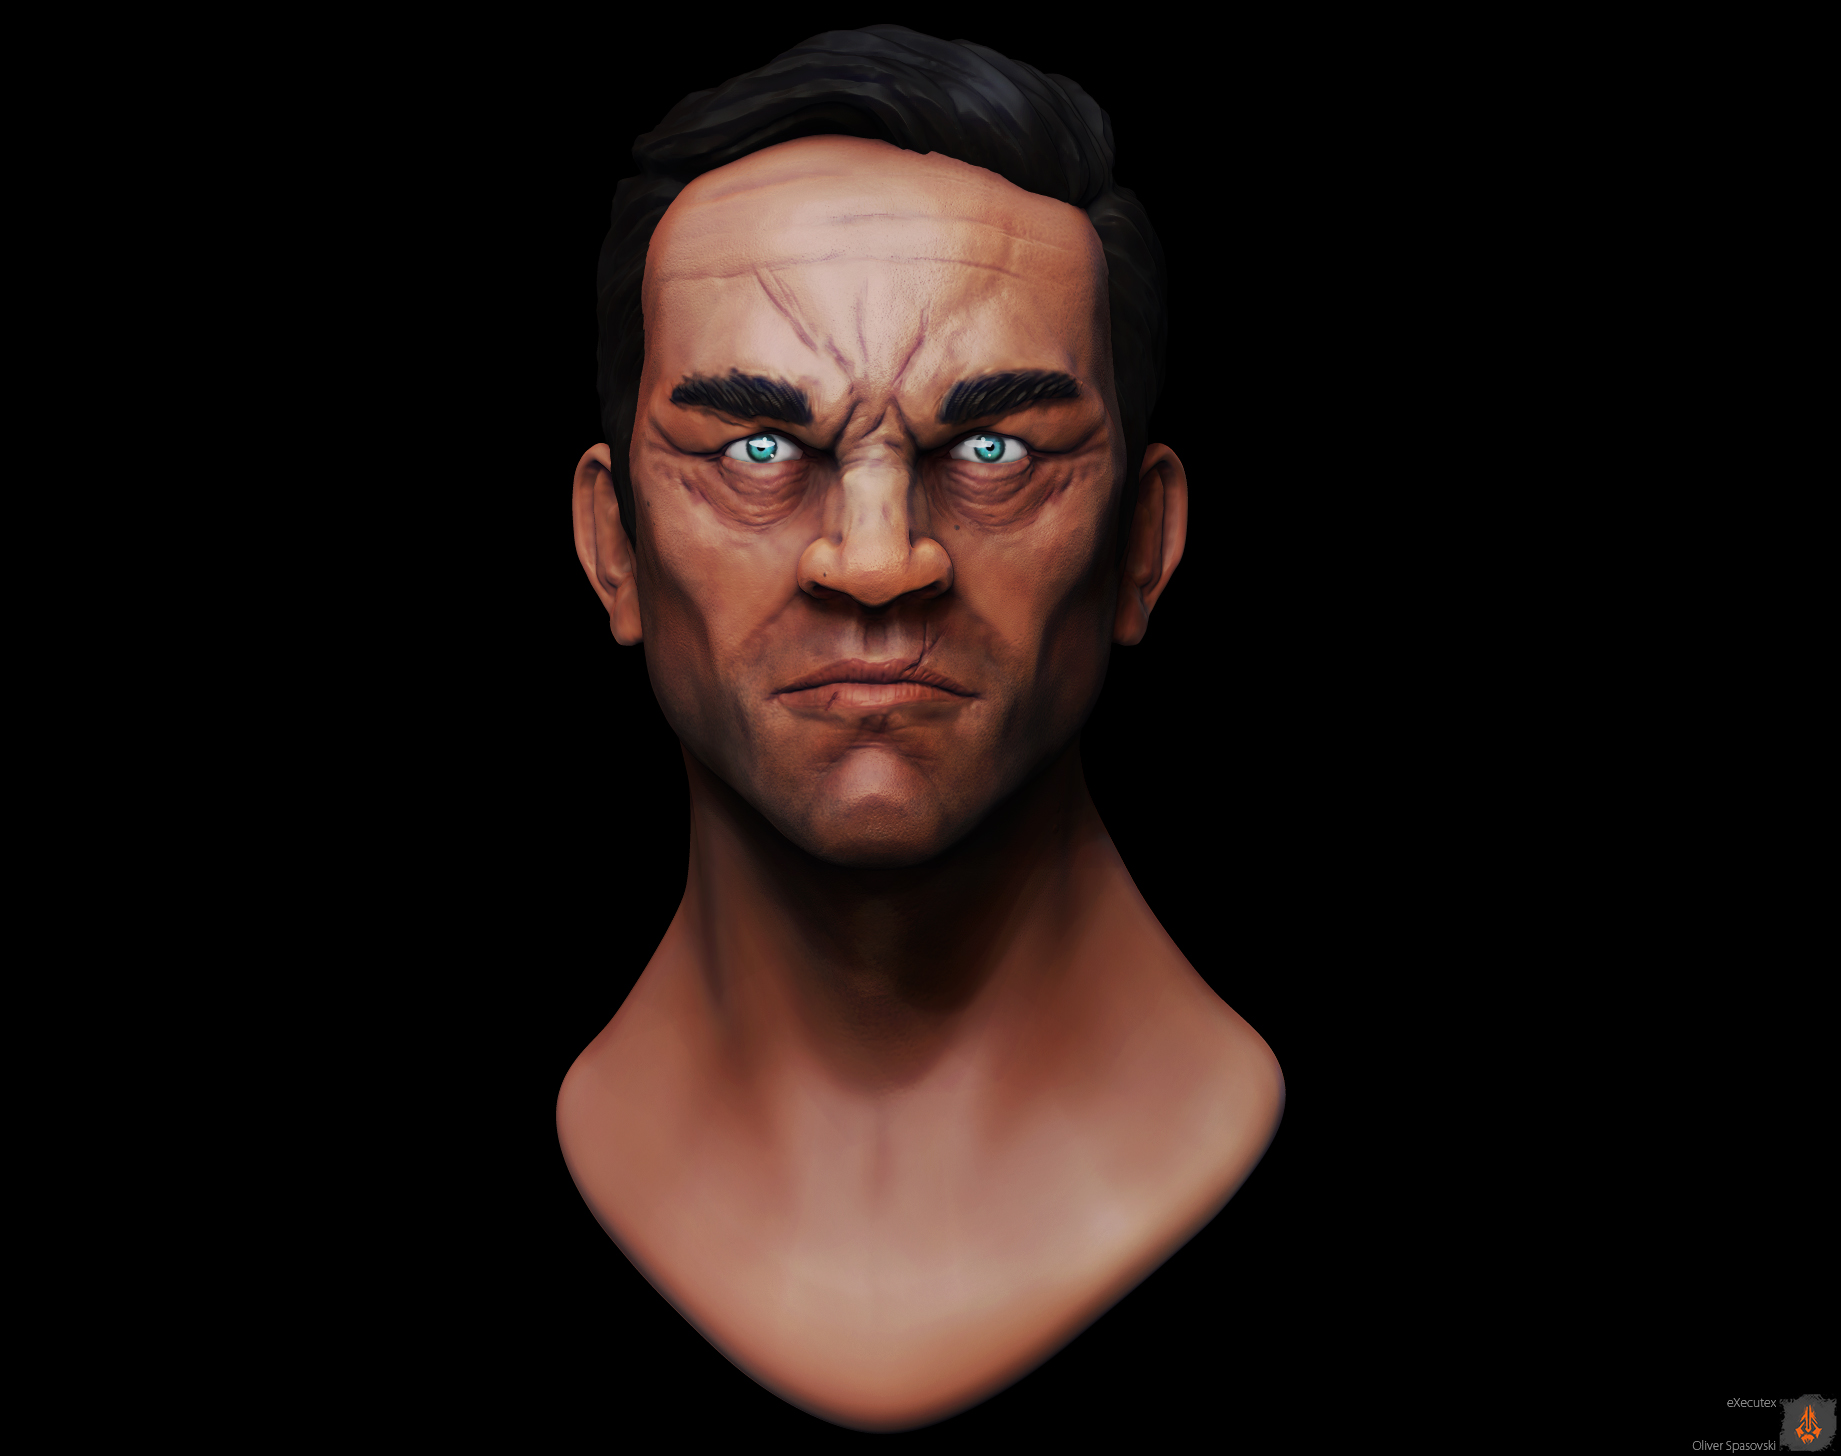 gang_bust_dishonored_by_executex-d6yuf84.jpg